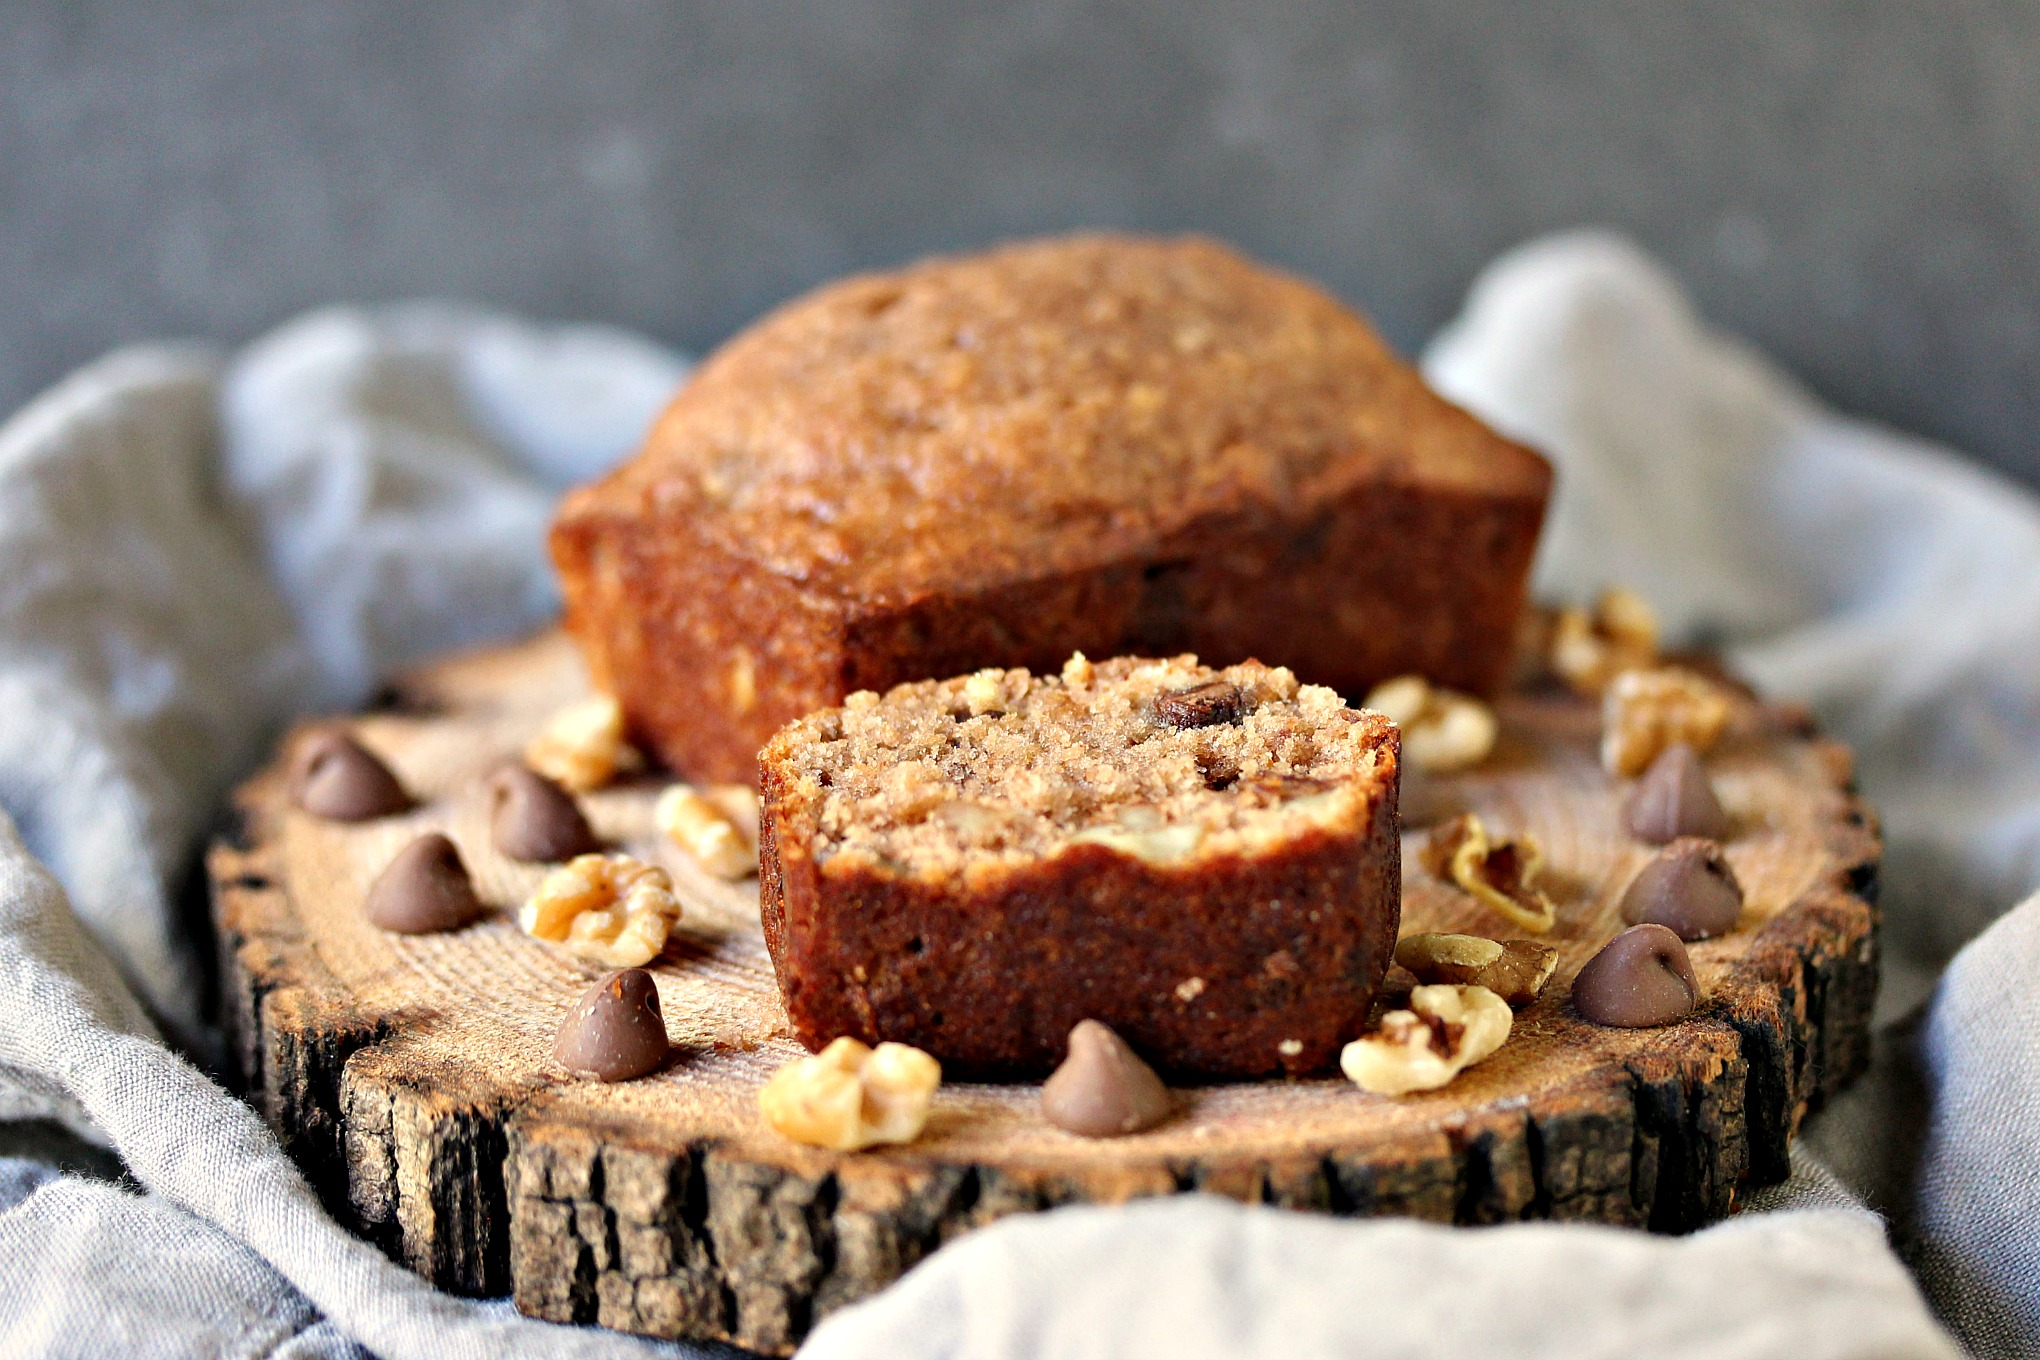 loaf and slice of Peanut Butter Chocolate Banana Bread with Walnuts on a wood trivet on a grey napkin